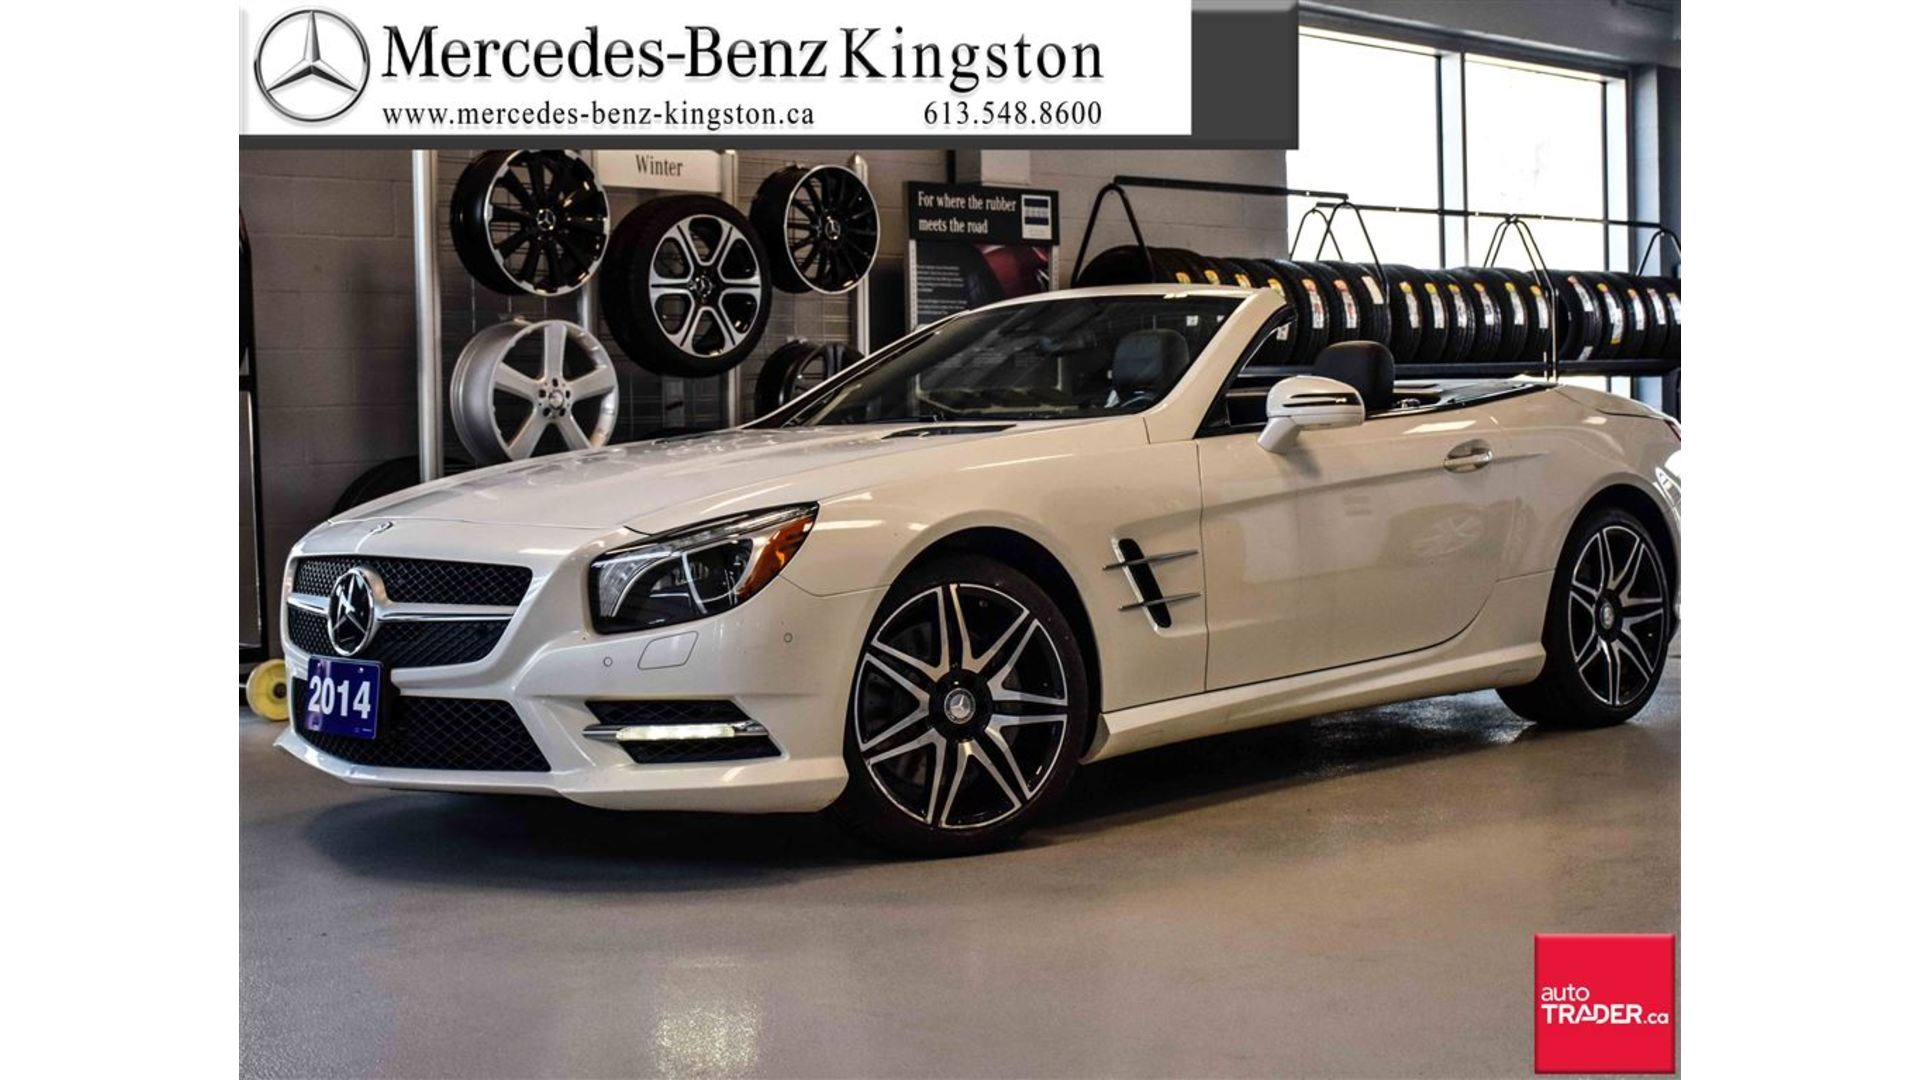 Certified Pre Owned 2014 Mercedes Benz SL CLASS SL550